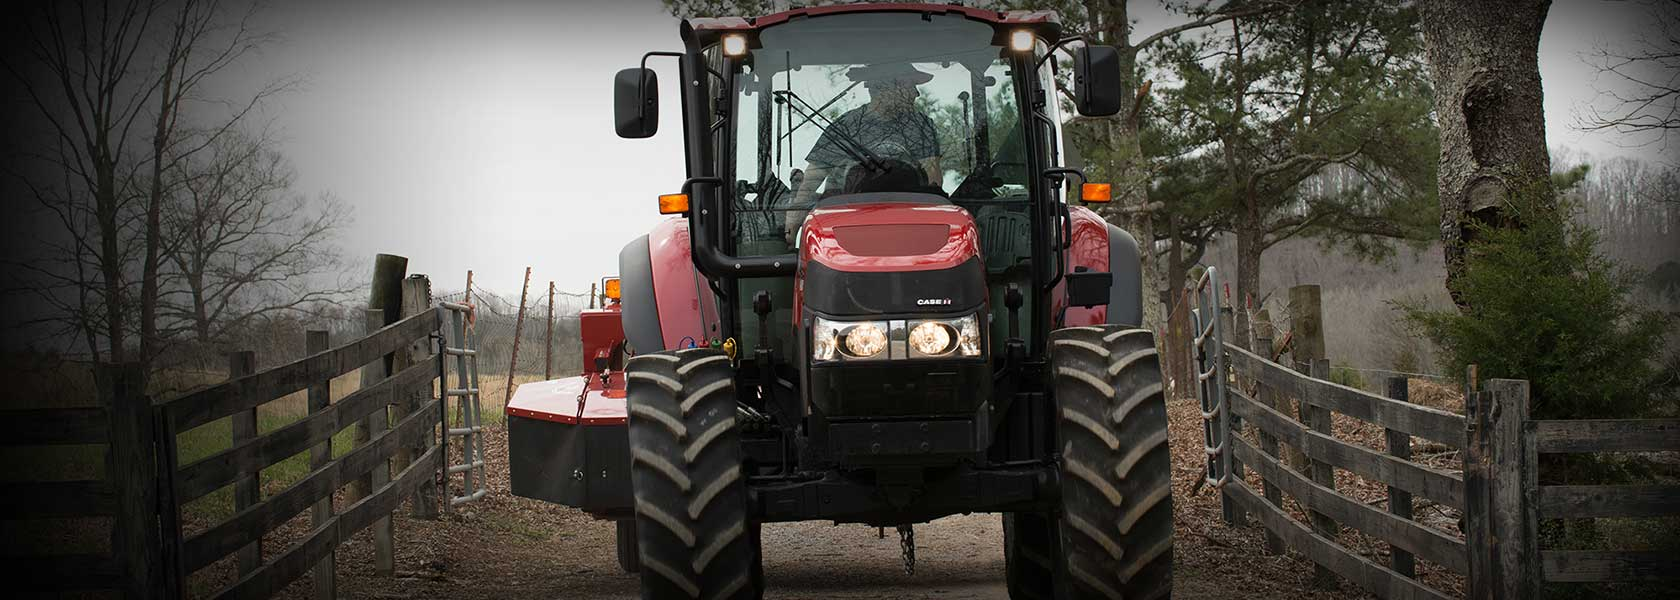 Case IH Dealer » Hines Equipment, A full-service equipment